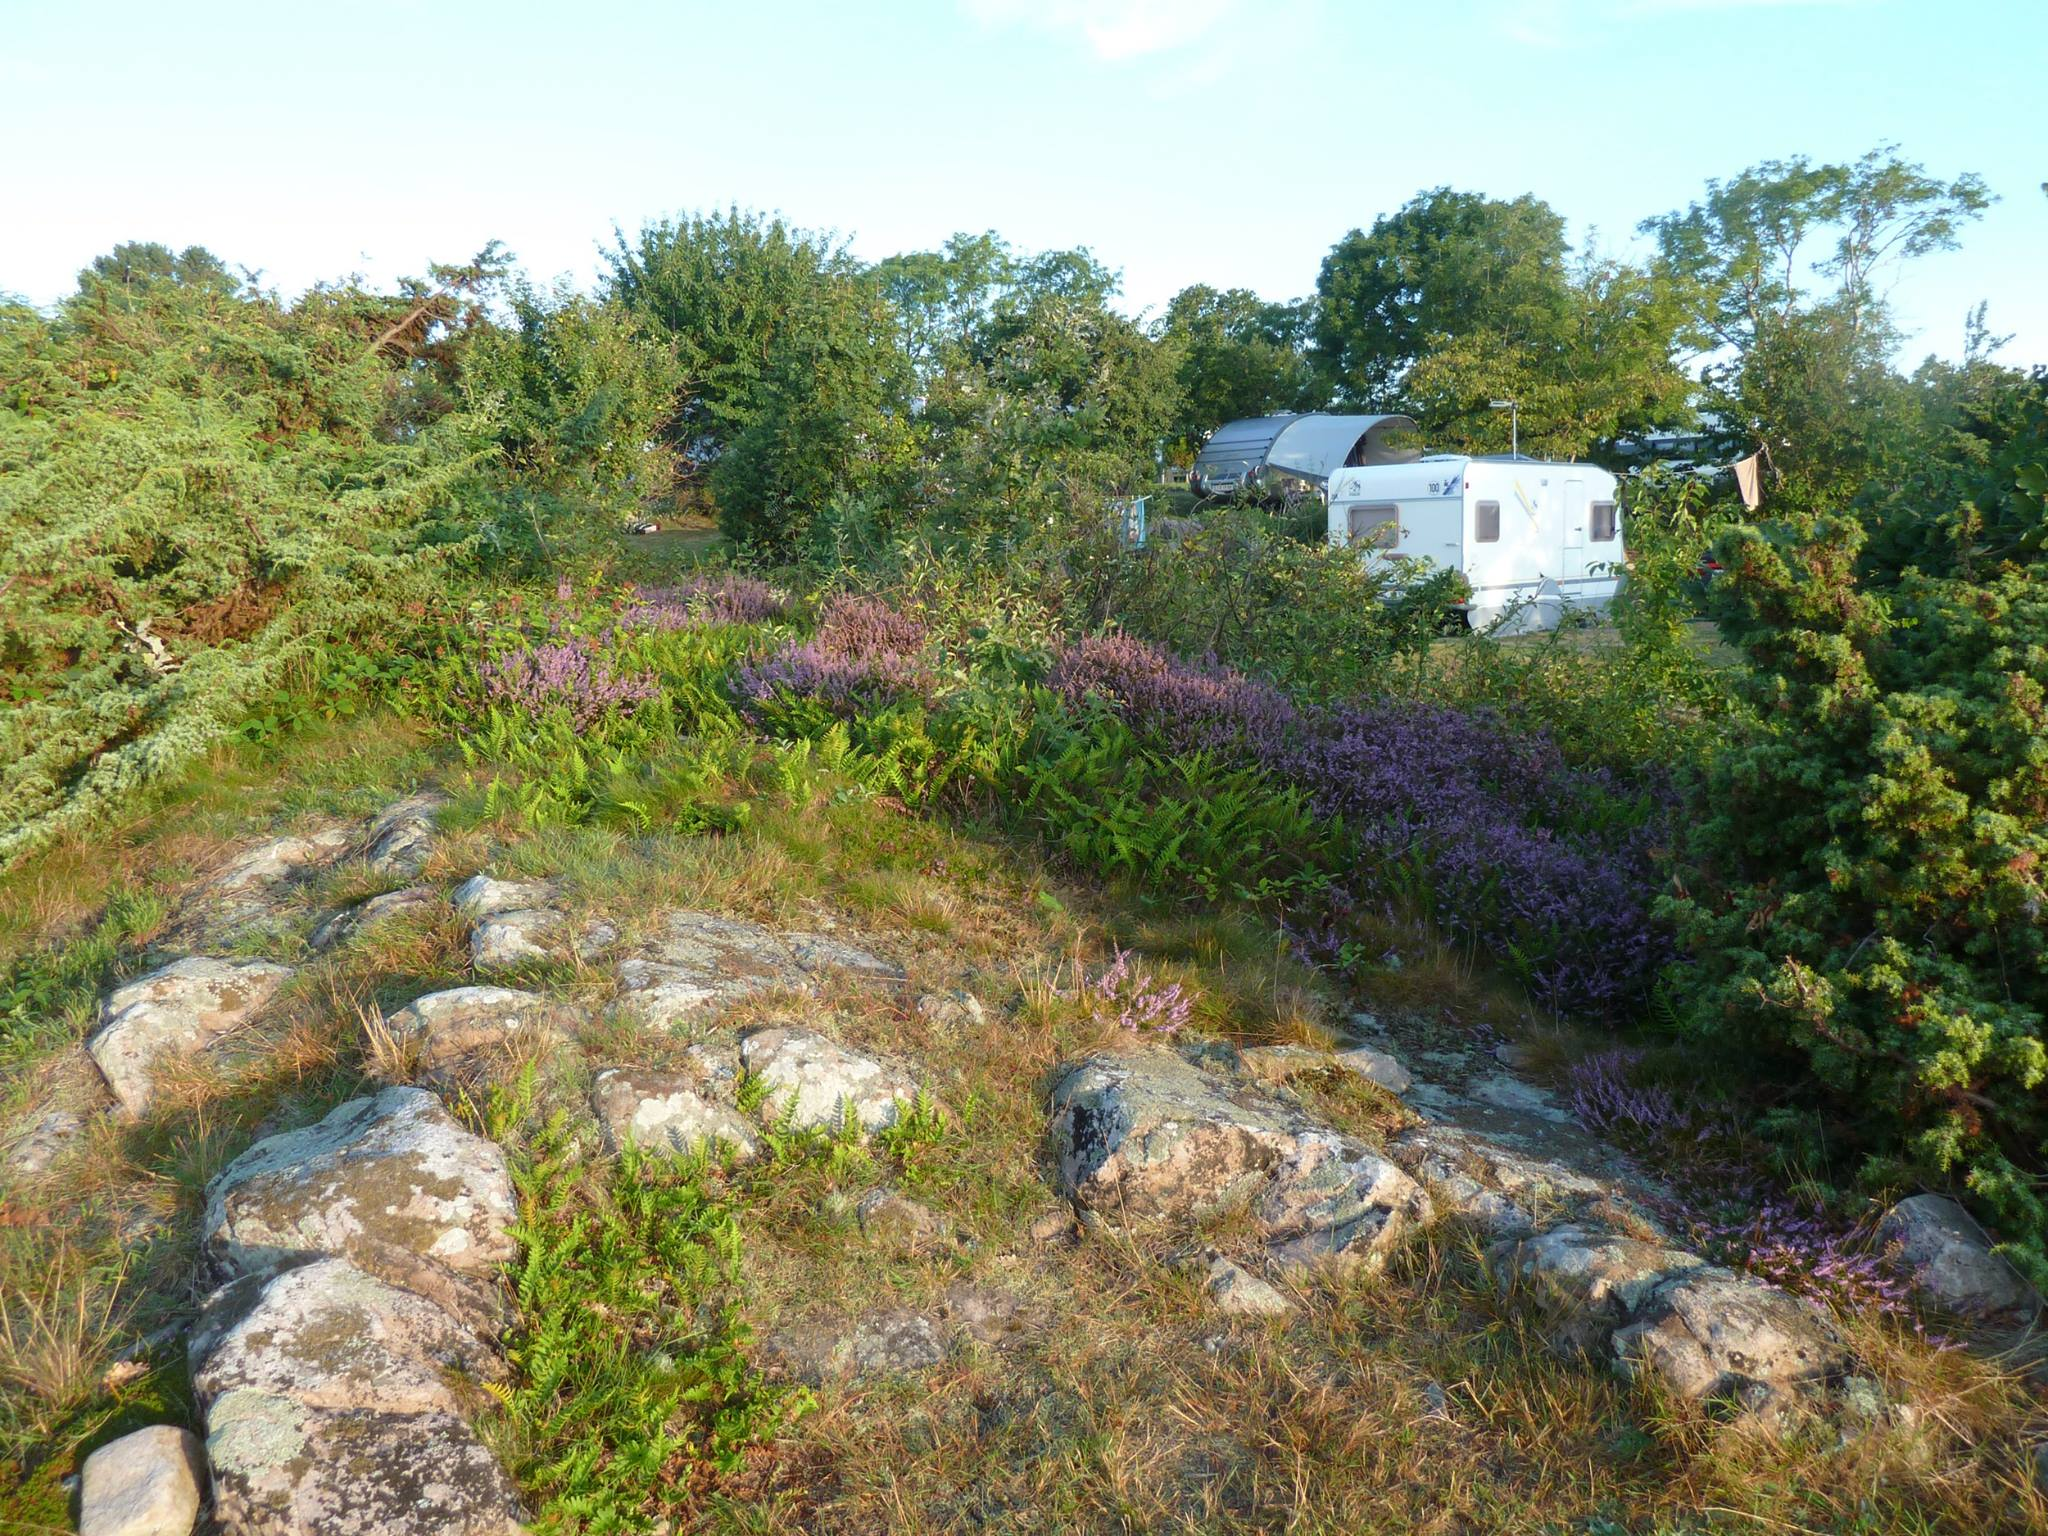 campingpladser sannes familiecamping